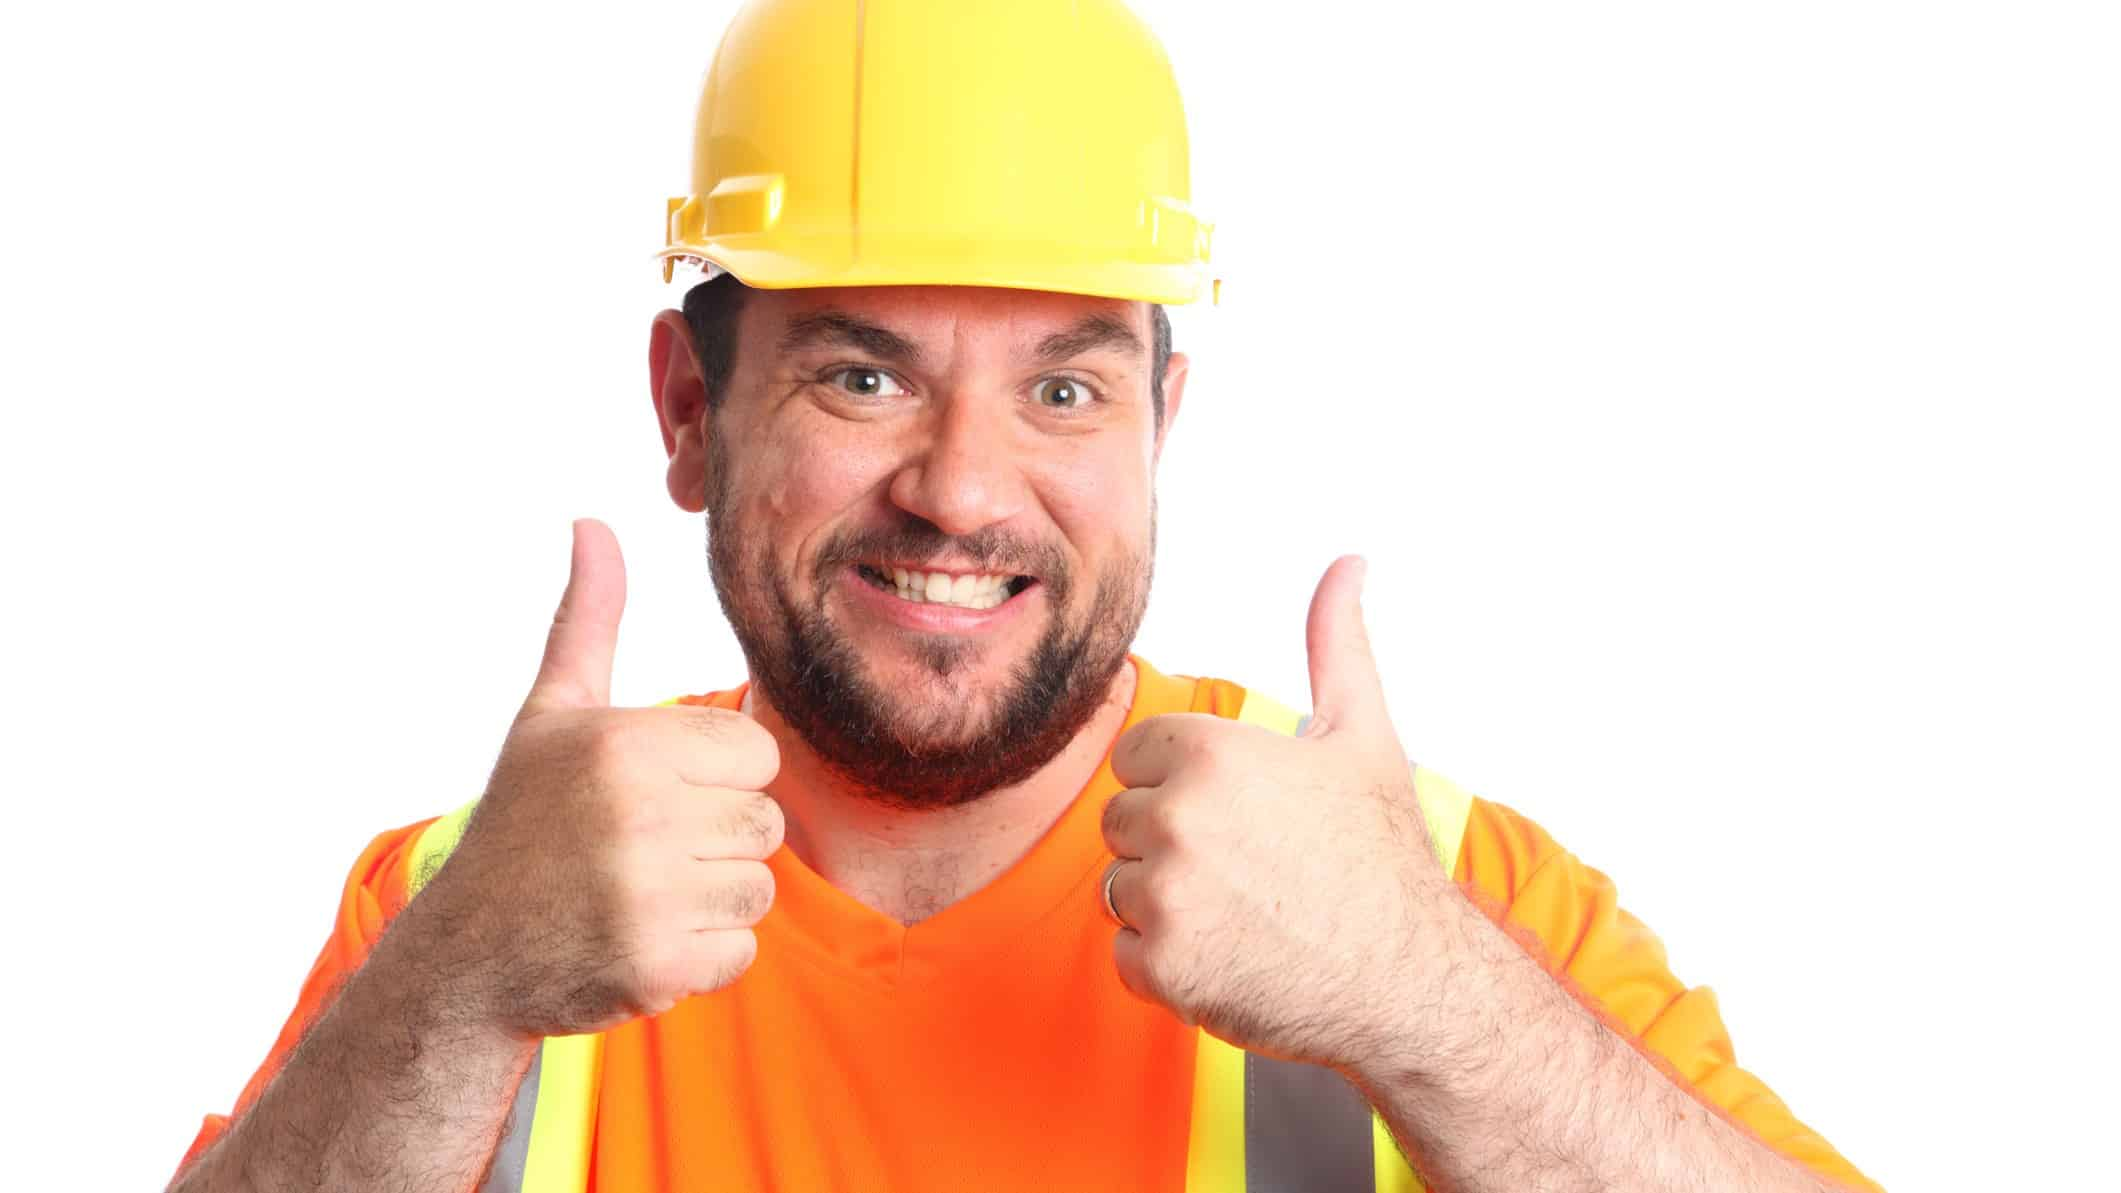 Mining worker wearing hard hat and high vis vest holds thumbs up and smiles